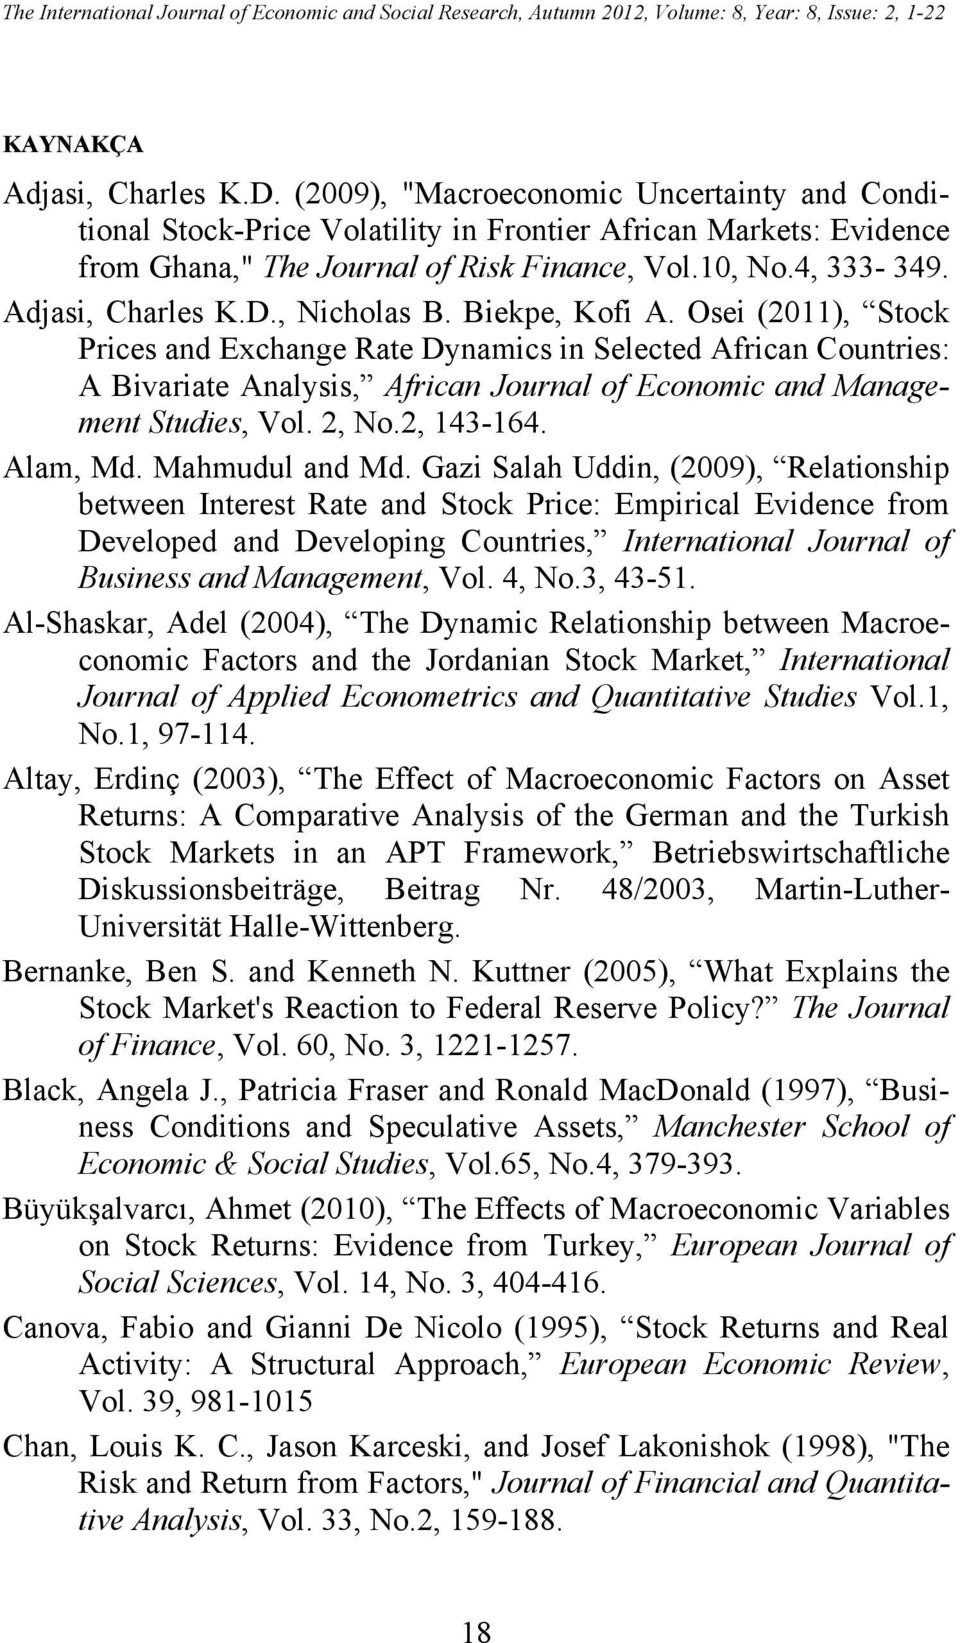 , Nicholas B. Biekpe, Kofi A. Osei (2011), Stock Prices and Exchange Rate Dynamics in Selected African Countries: A Bivariate Analysis, African Journal of Economic and Management Studies, Vol. 2, No.